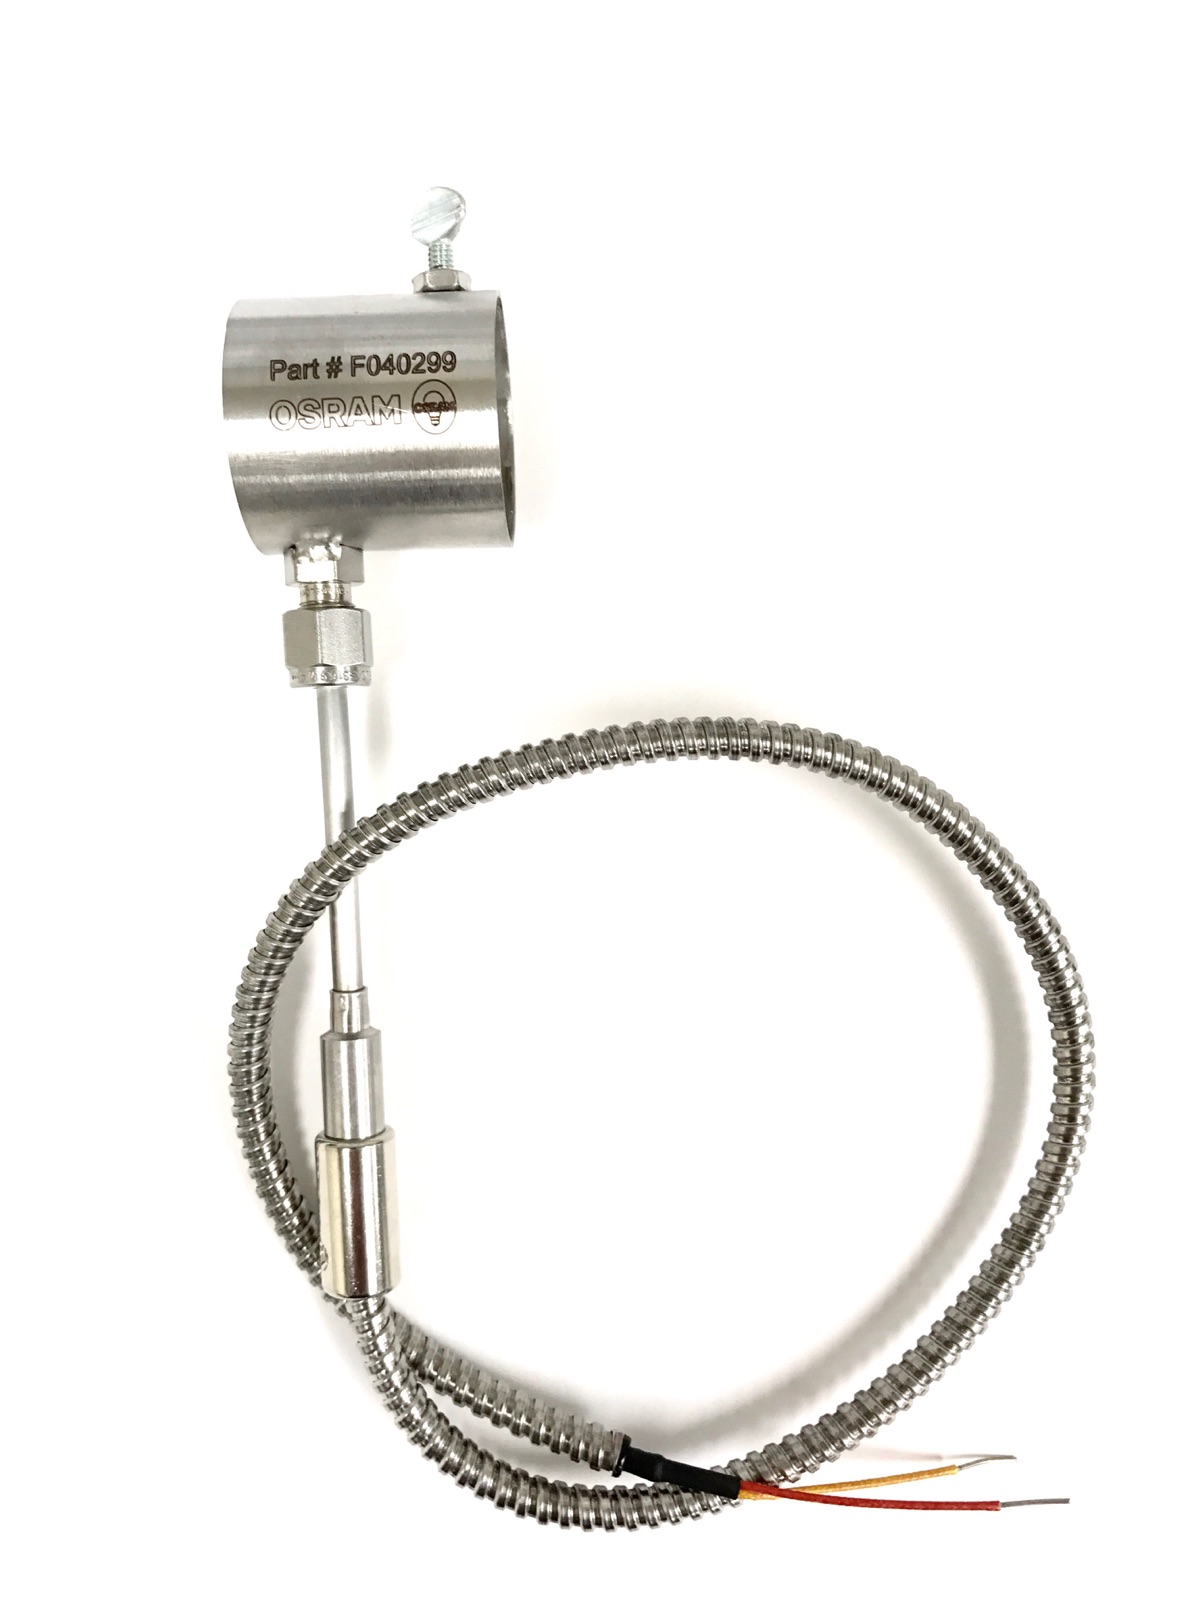 040299 TUTCO SUREHEAT Hot Air Heater Serpentine VI Thermocouple Holder